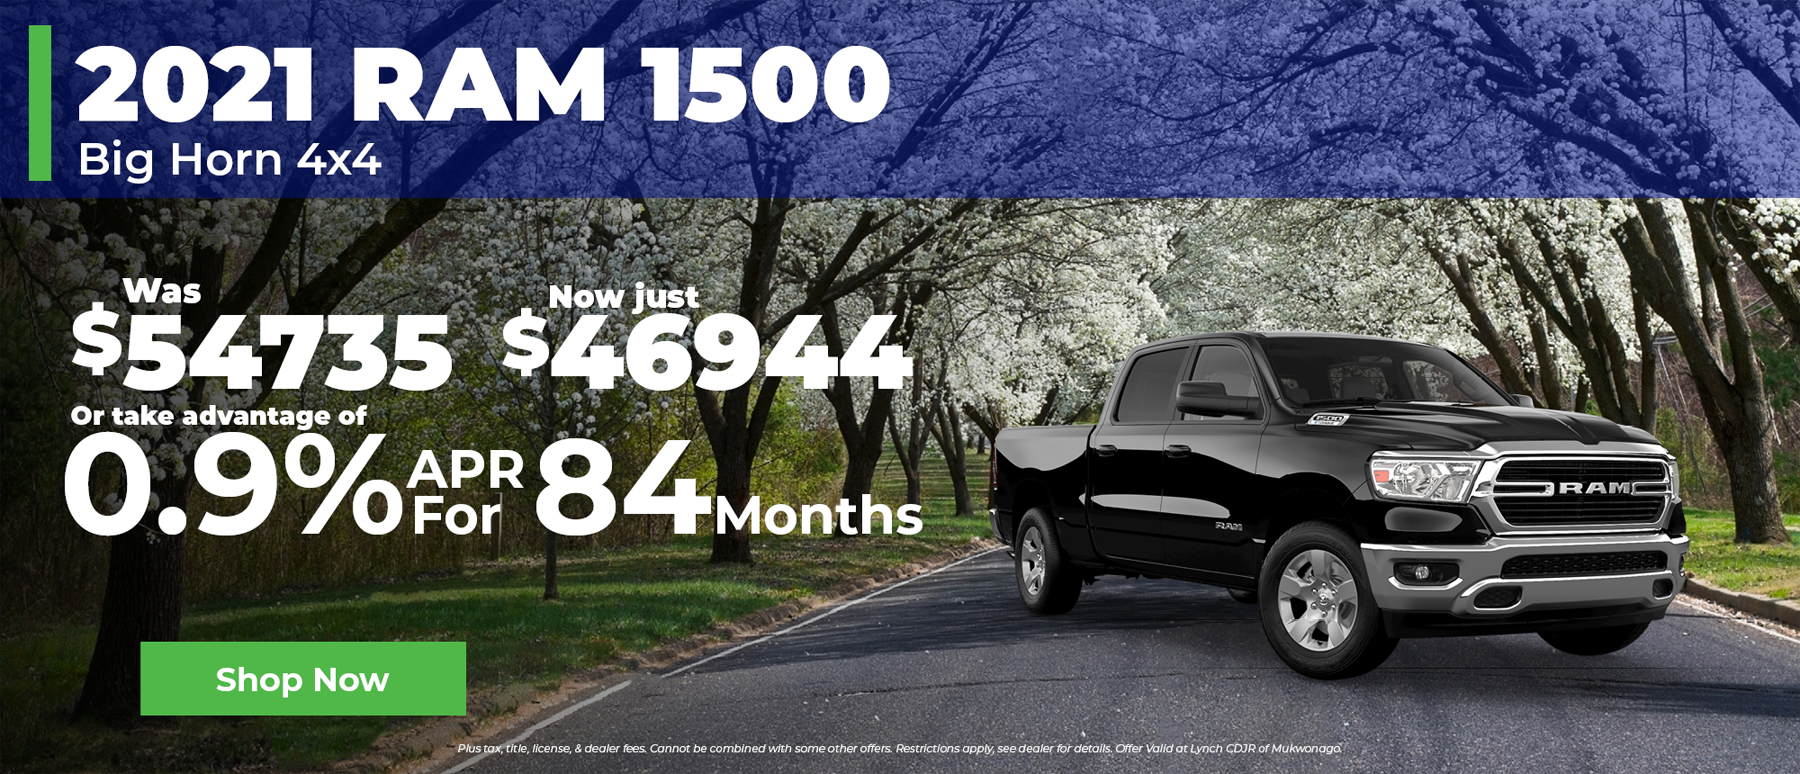 0.9% Financing for 84 Months on 2021 Ram 1500 in Mukwonago WI